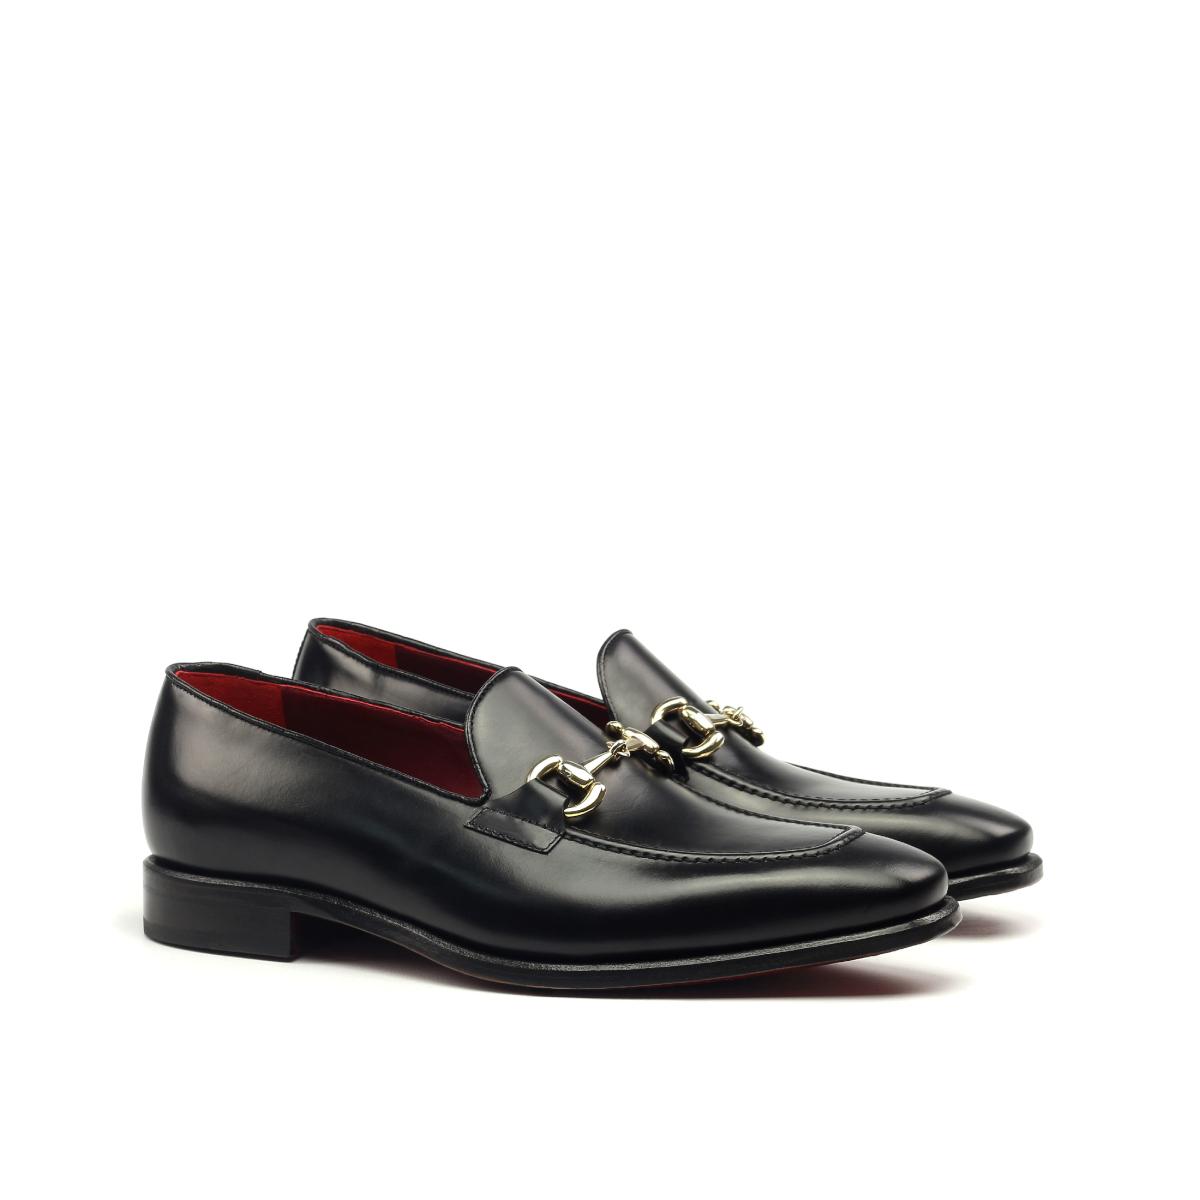 3e3d5238fe8122 Black box calf horsebit loafer - Cambrillón Bespoke Leather